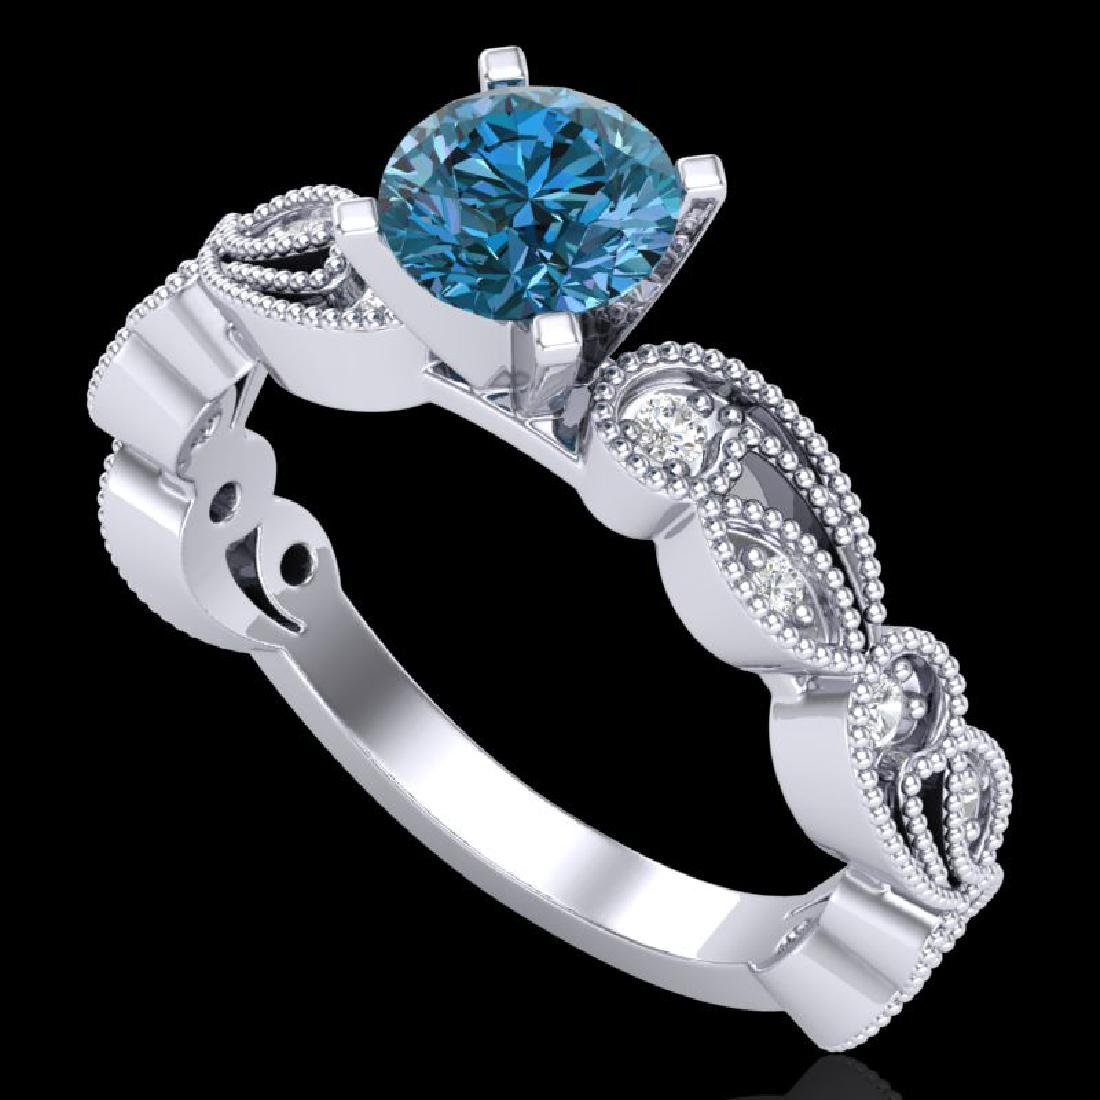 1.01 CTW Fancy Intense Blue Diamond Solitaire Art Deco